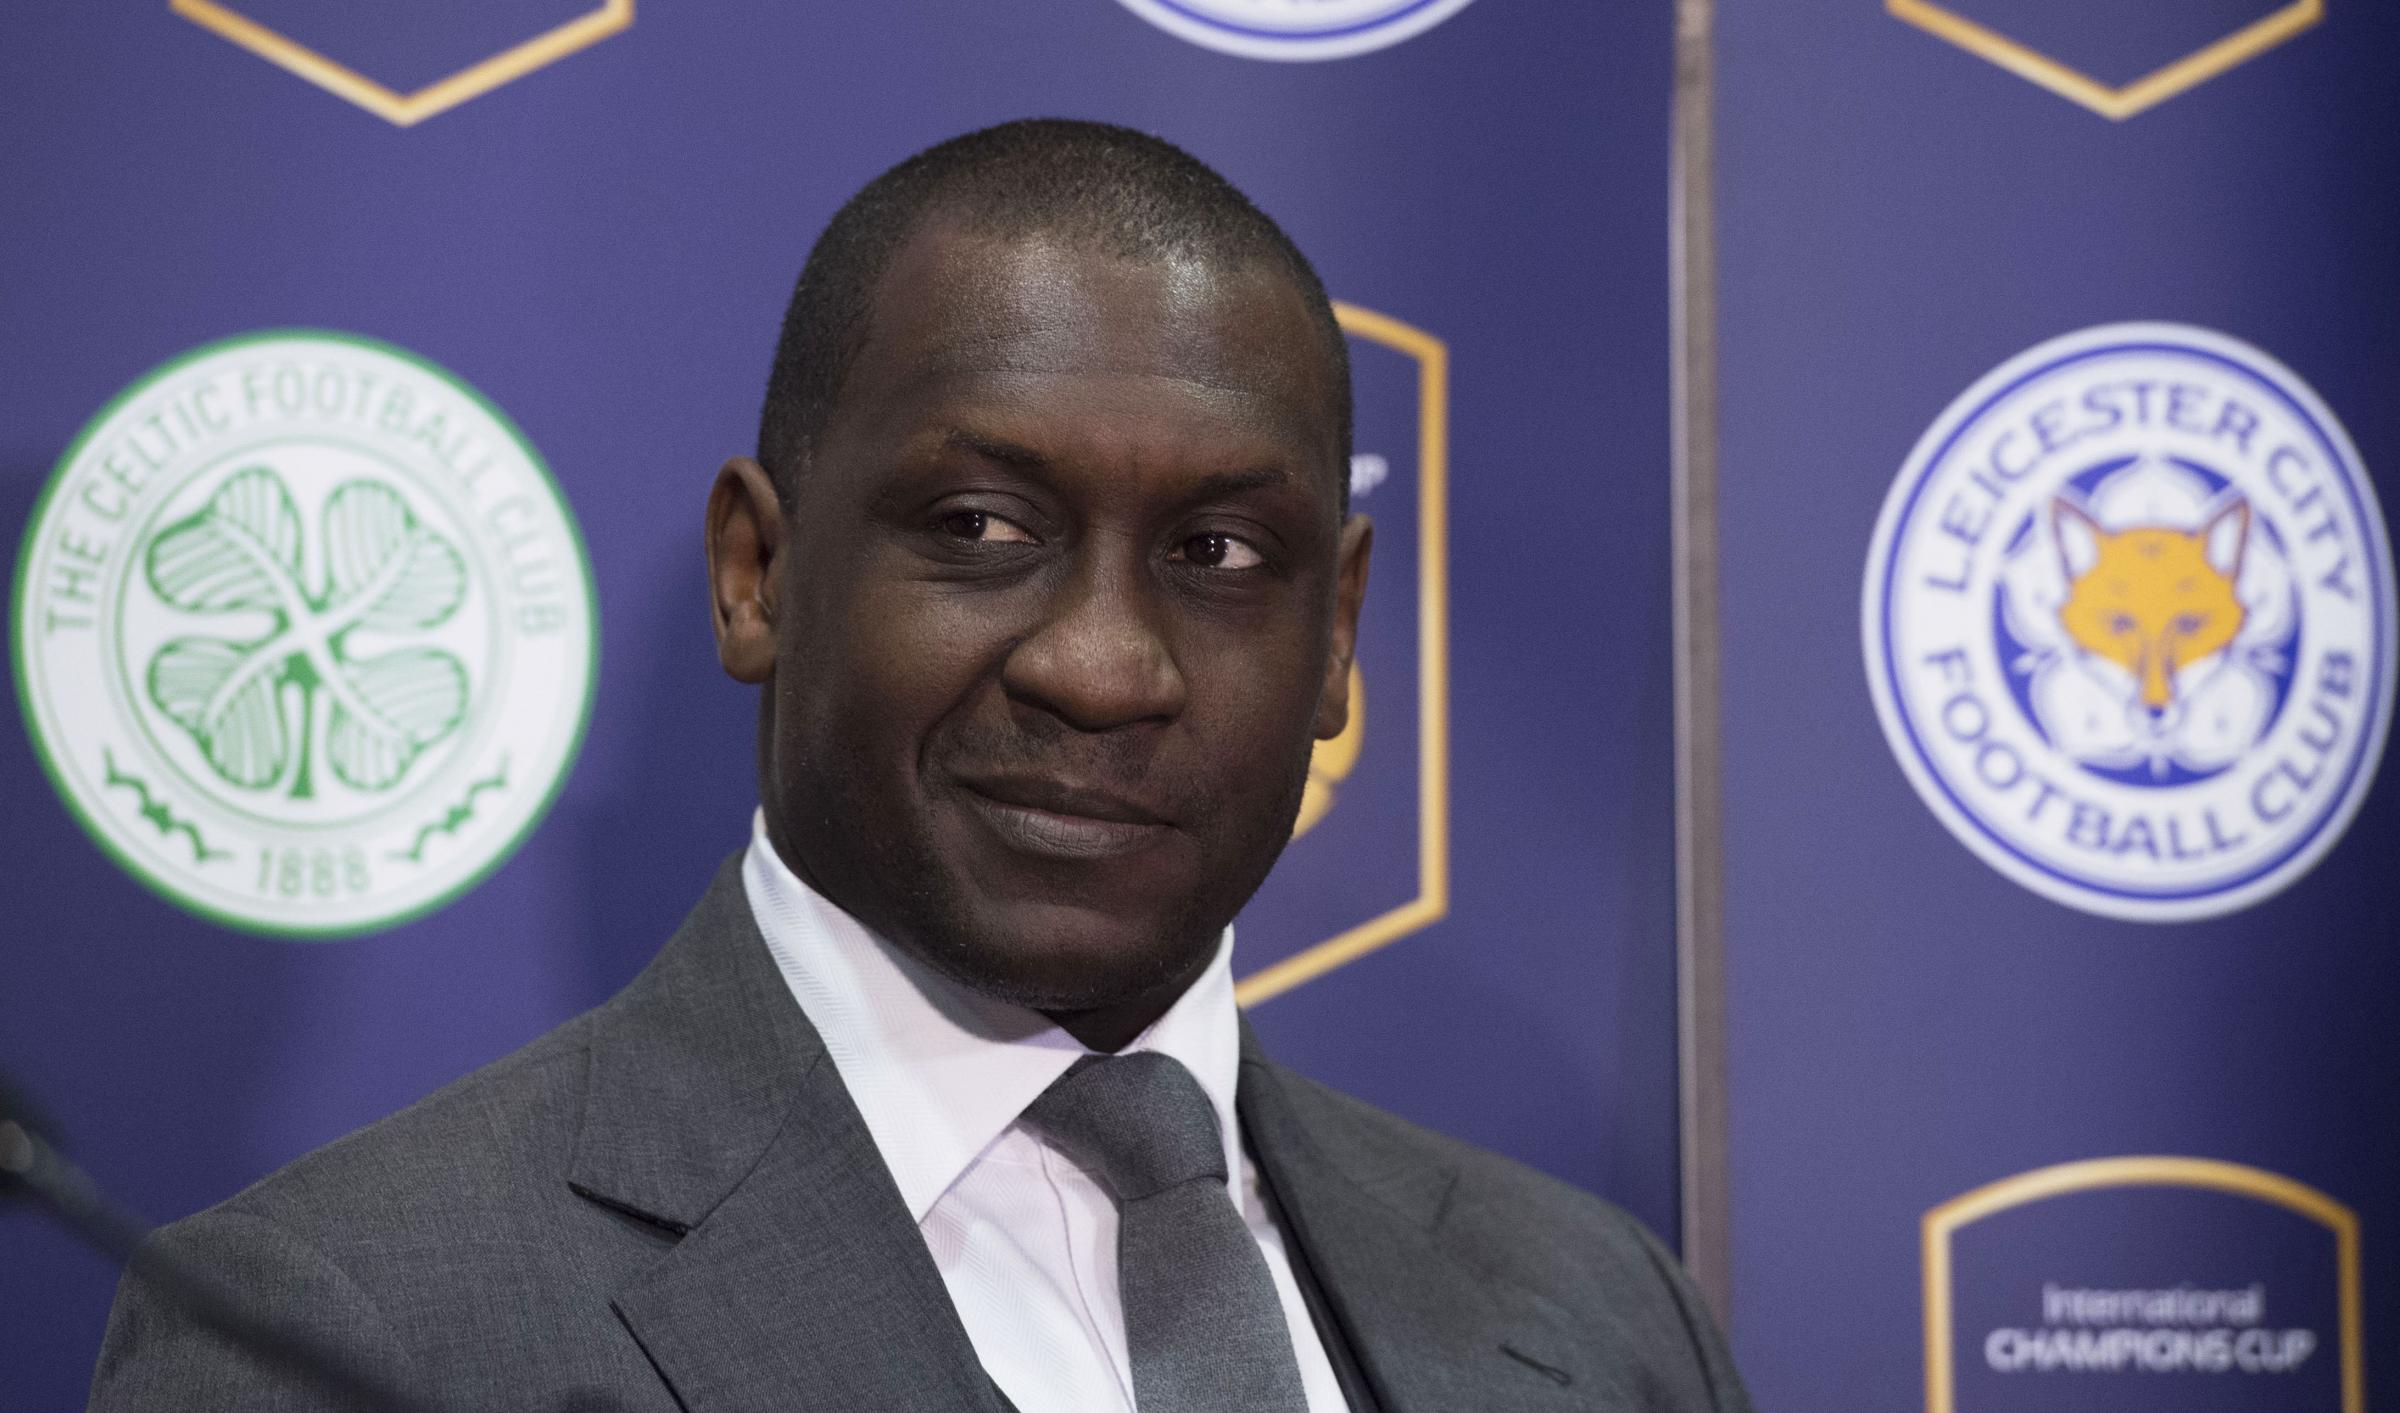 Emile Heskey speaking before the forthcoming match between the Scottish and English title winners, in the International Champions Cup tournament.